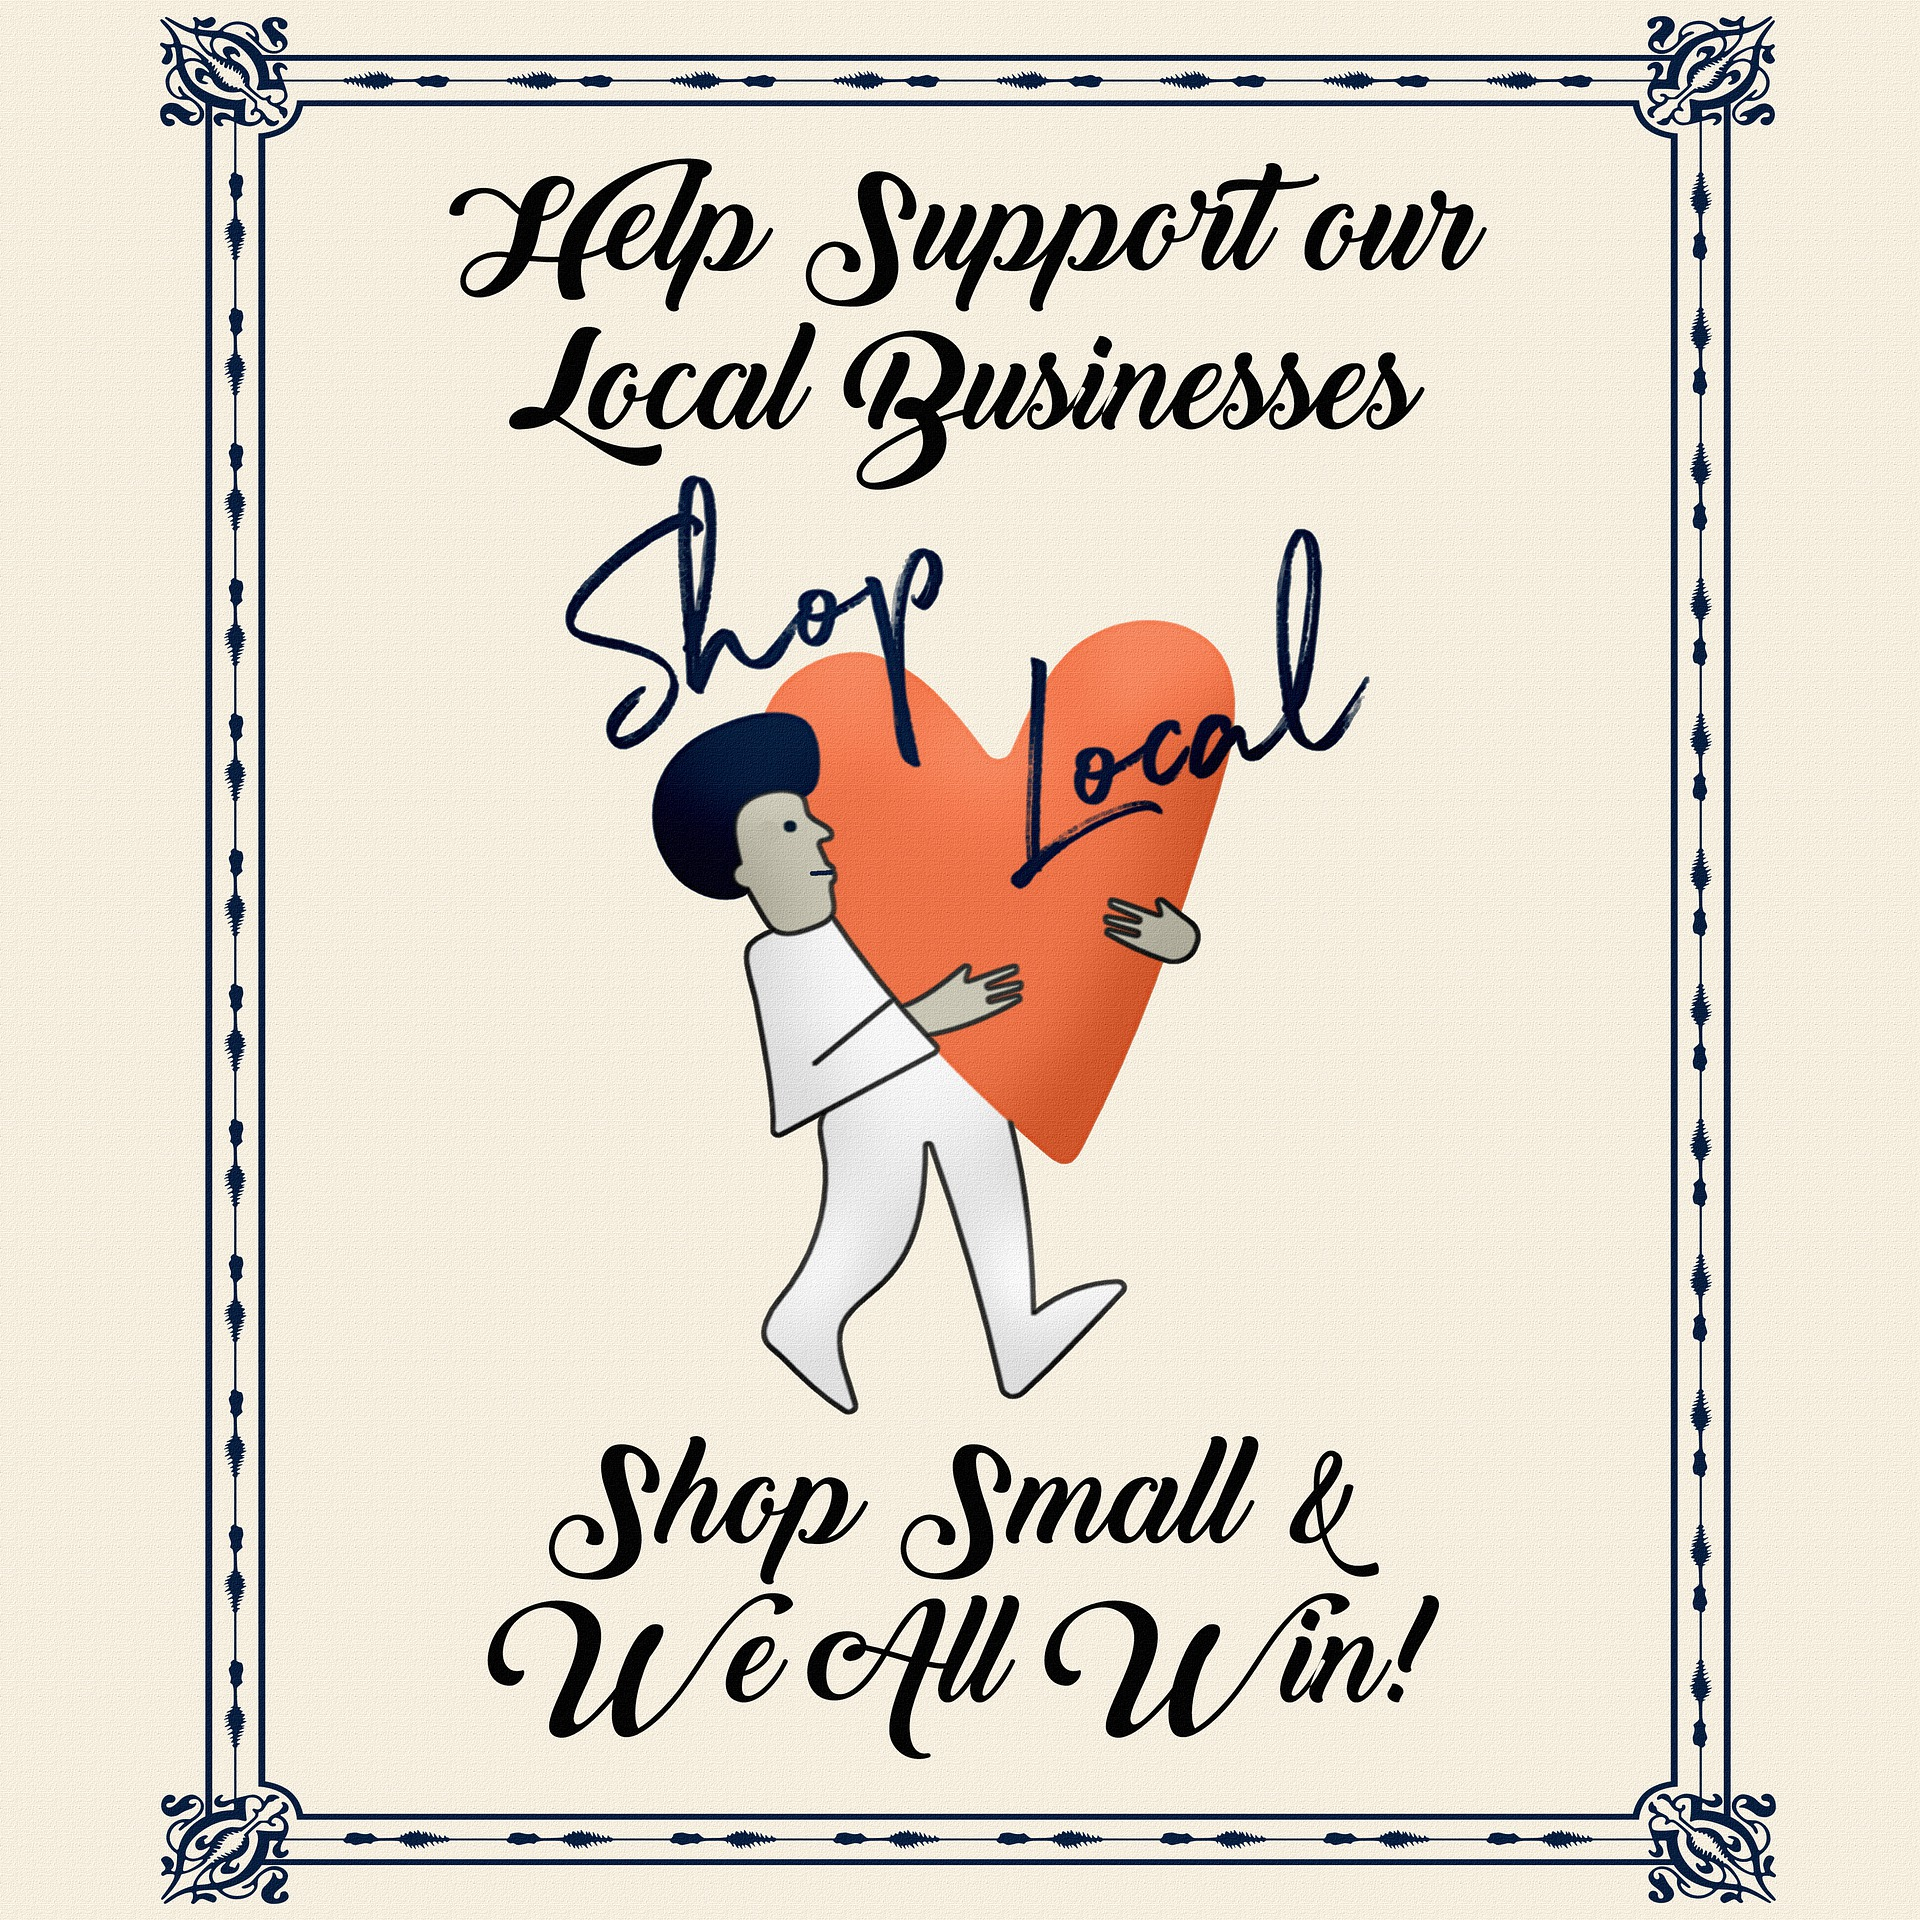 """A poster of a man carrying a heart with the text """"Help Support our Local Businesses. Shop Local. Shop Small and We All Win."""""""